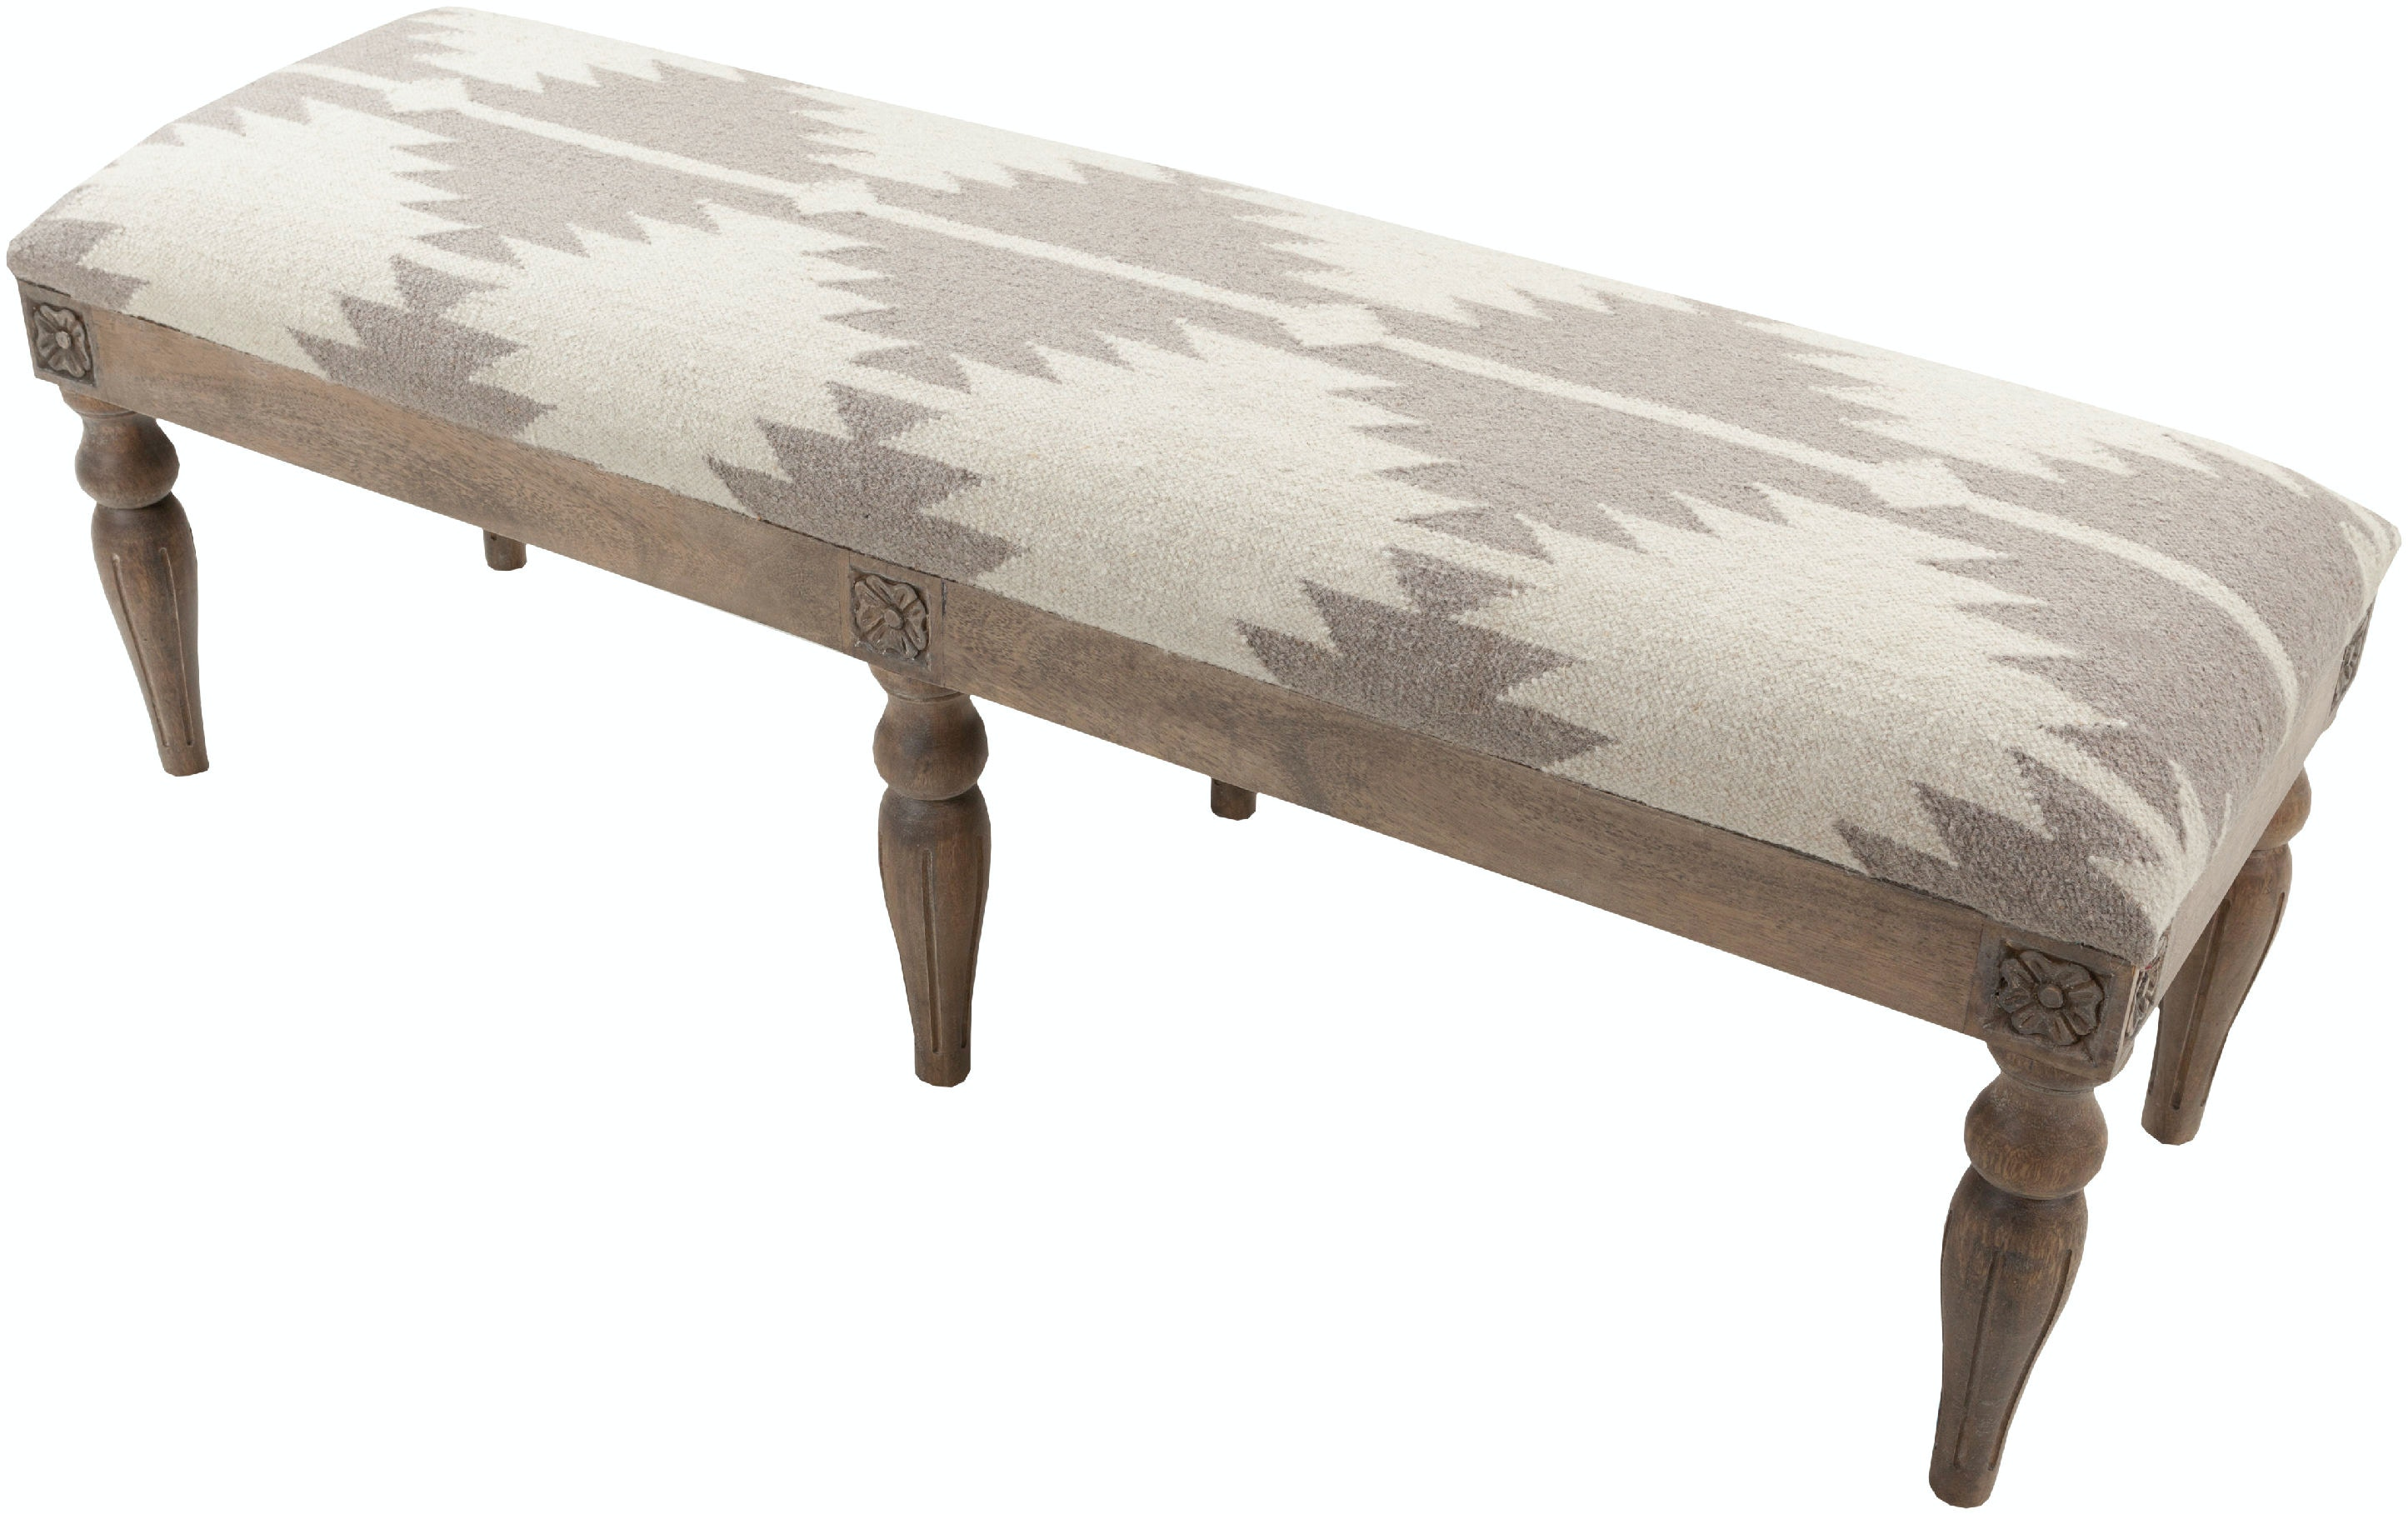 Incroyable Surya Furniture 59 X 18 X 19 Bench FL 1175 From Walter E. Smithe